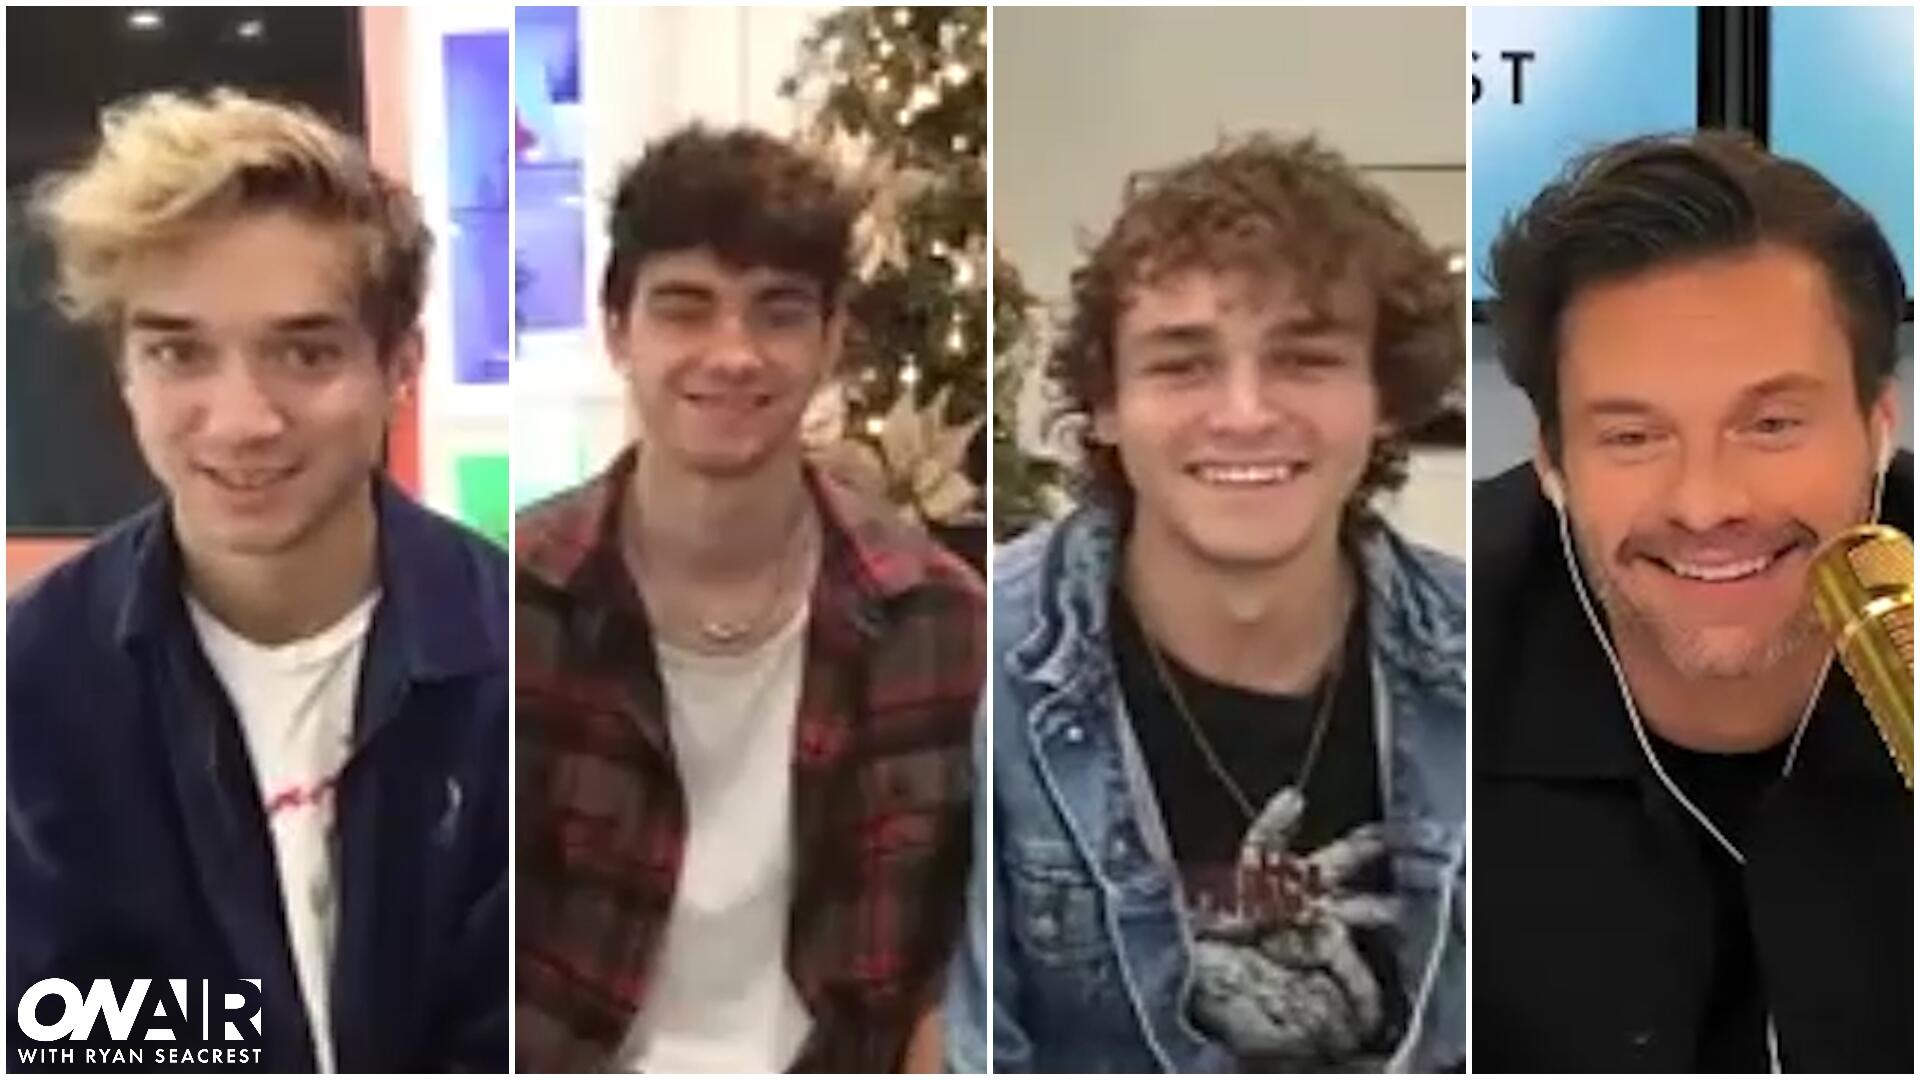 Why Don't We Reveal the 'Sucky' Name They Almost Chose for Second Album